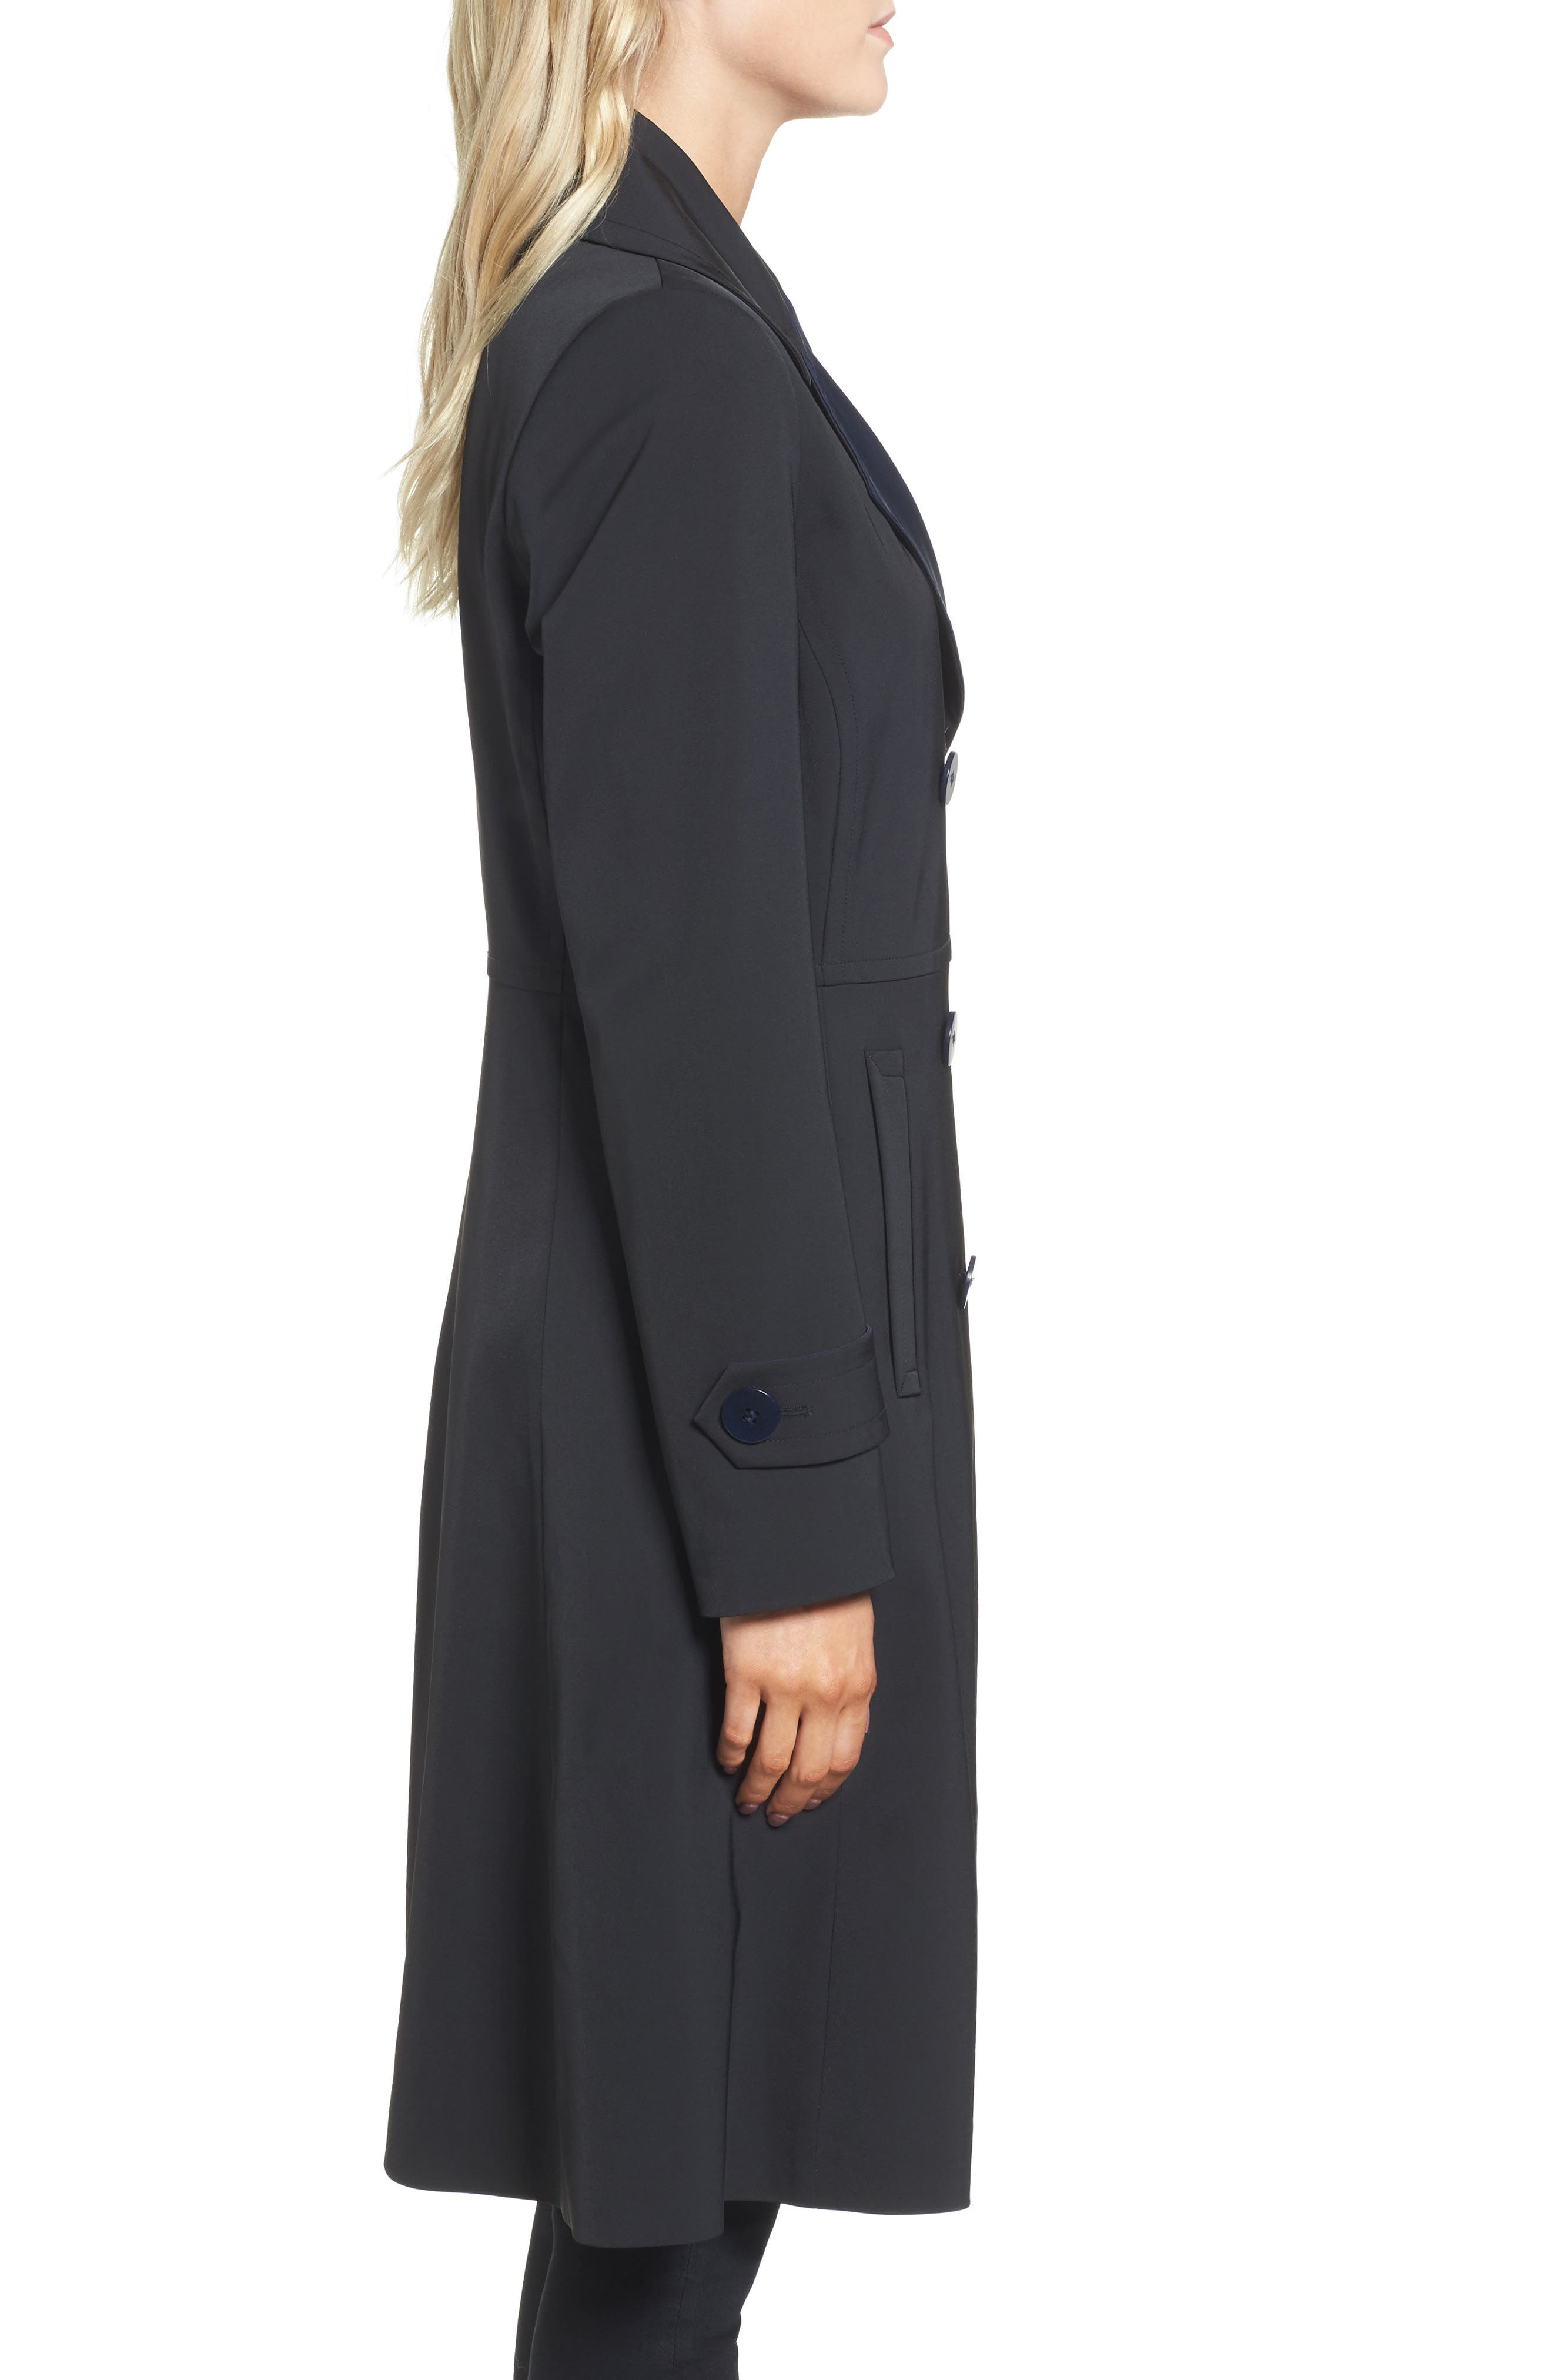 Isabella Two-Tone Double Breasted Trench Raincoat,                             Alternate thumbnail 3, color,                             Black/ Navy